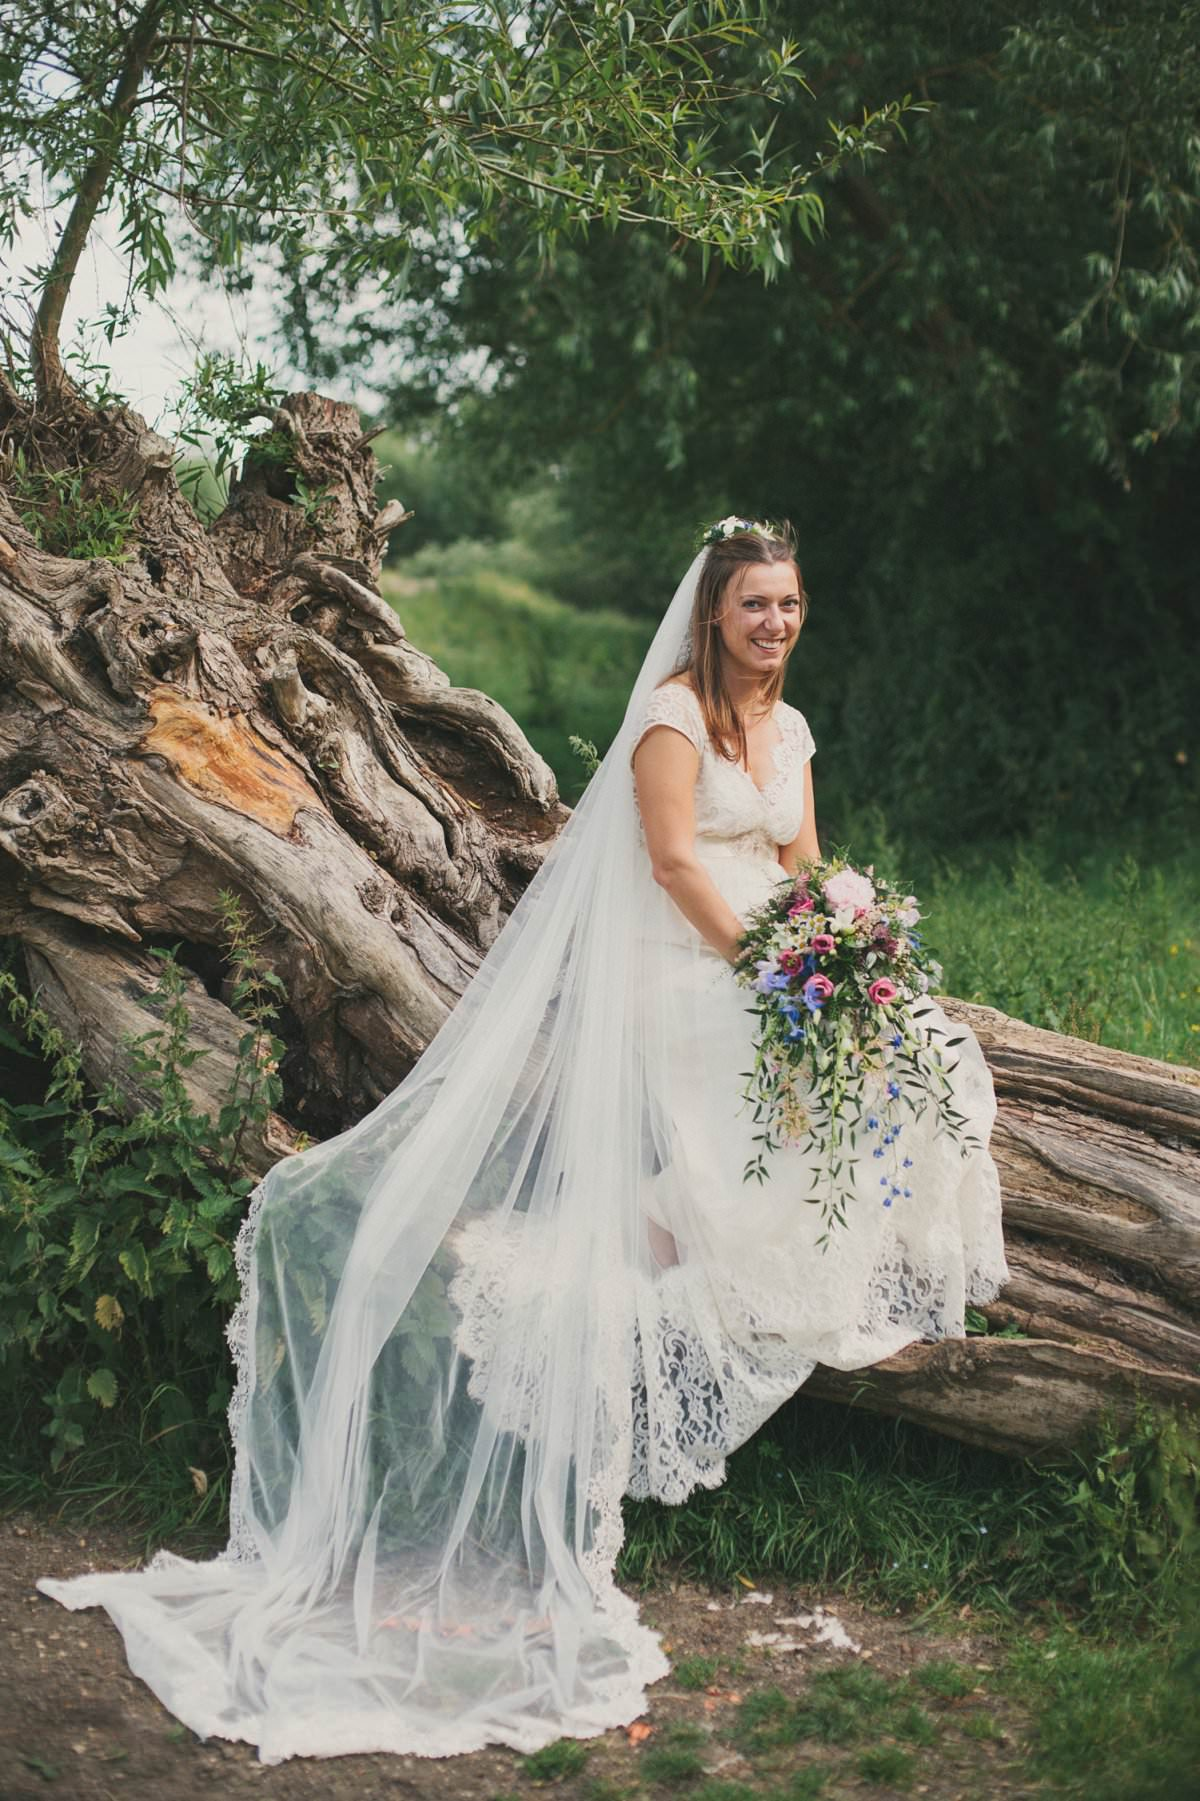 Bride in Claire Pettibone dress and veil with bouquet sits on fallen tree during wedding at Port Meadow Oxford